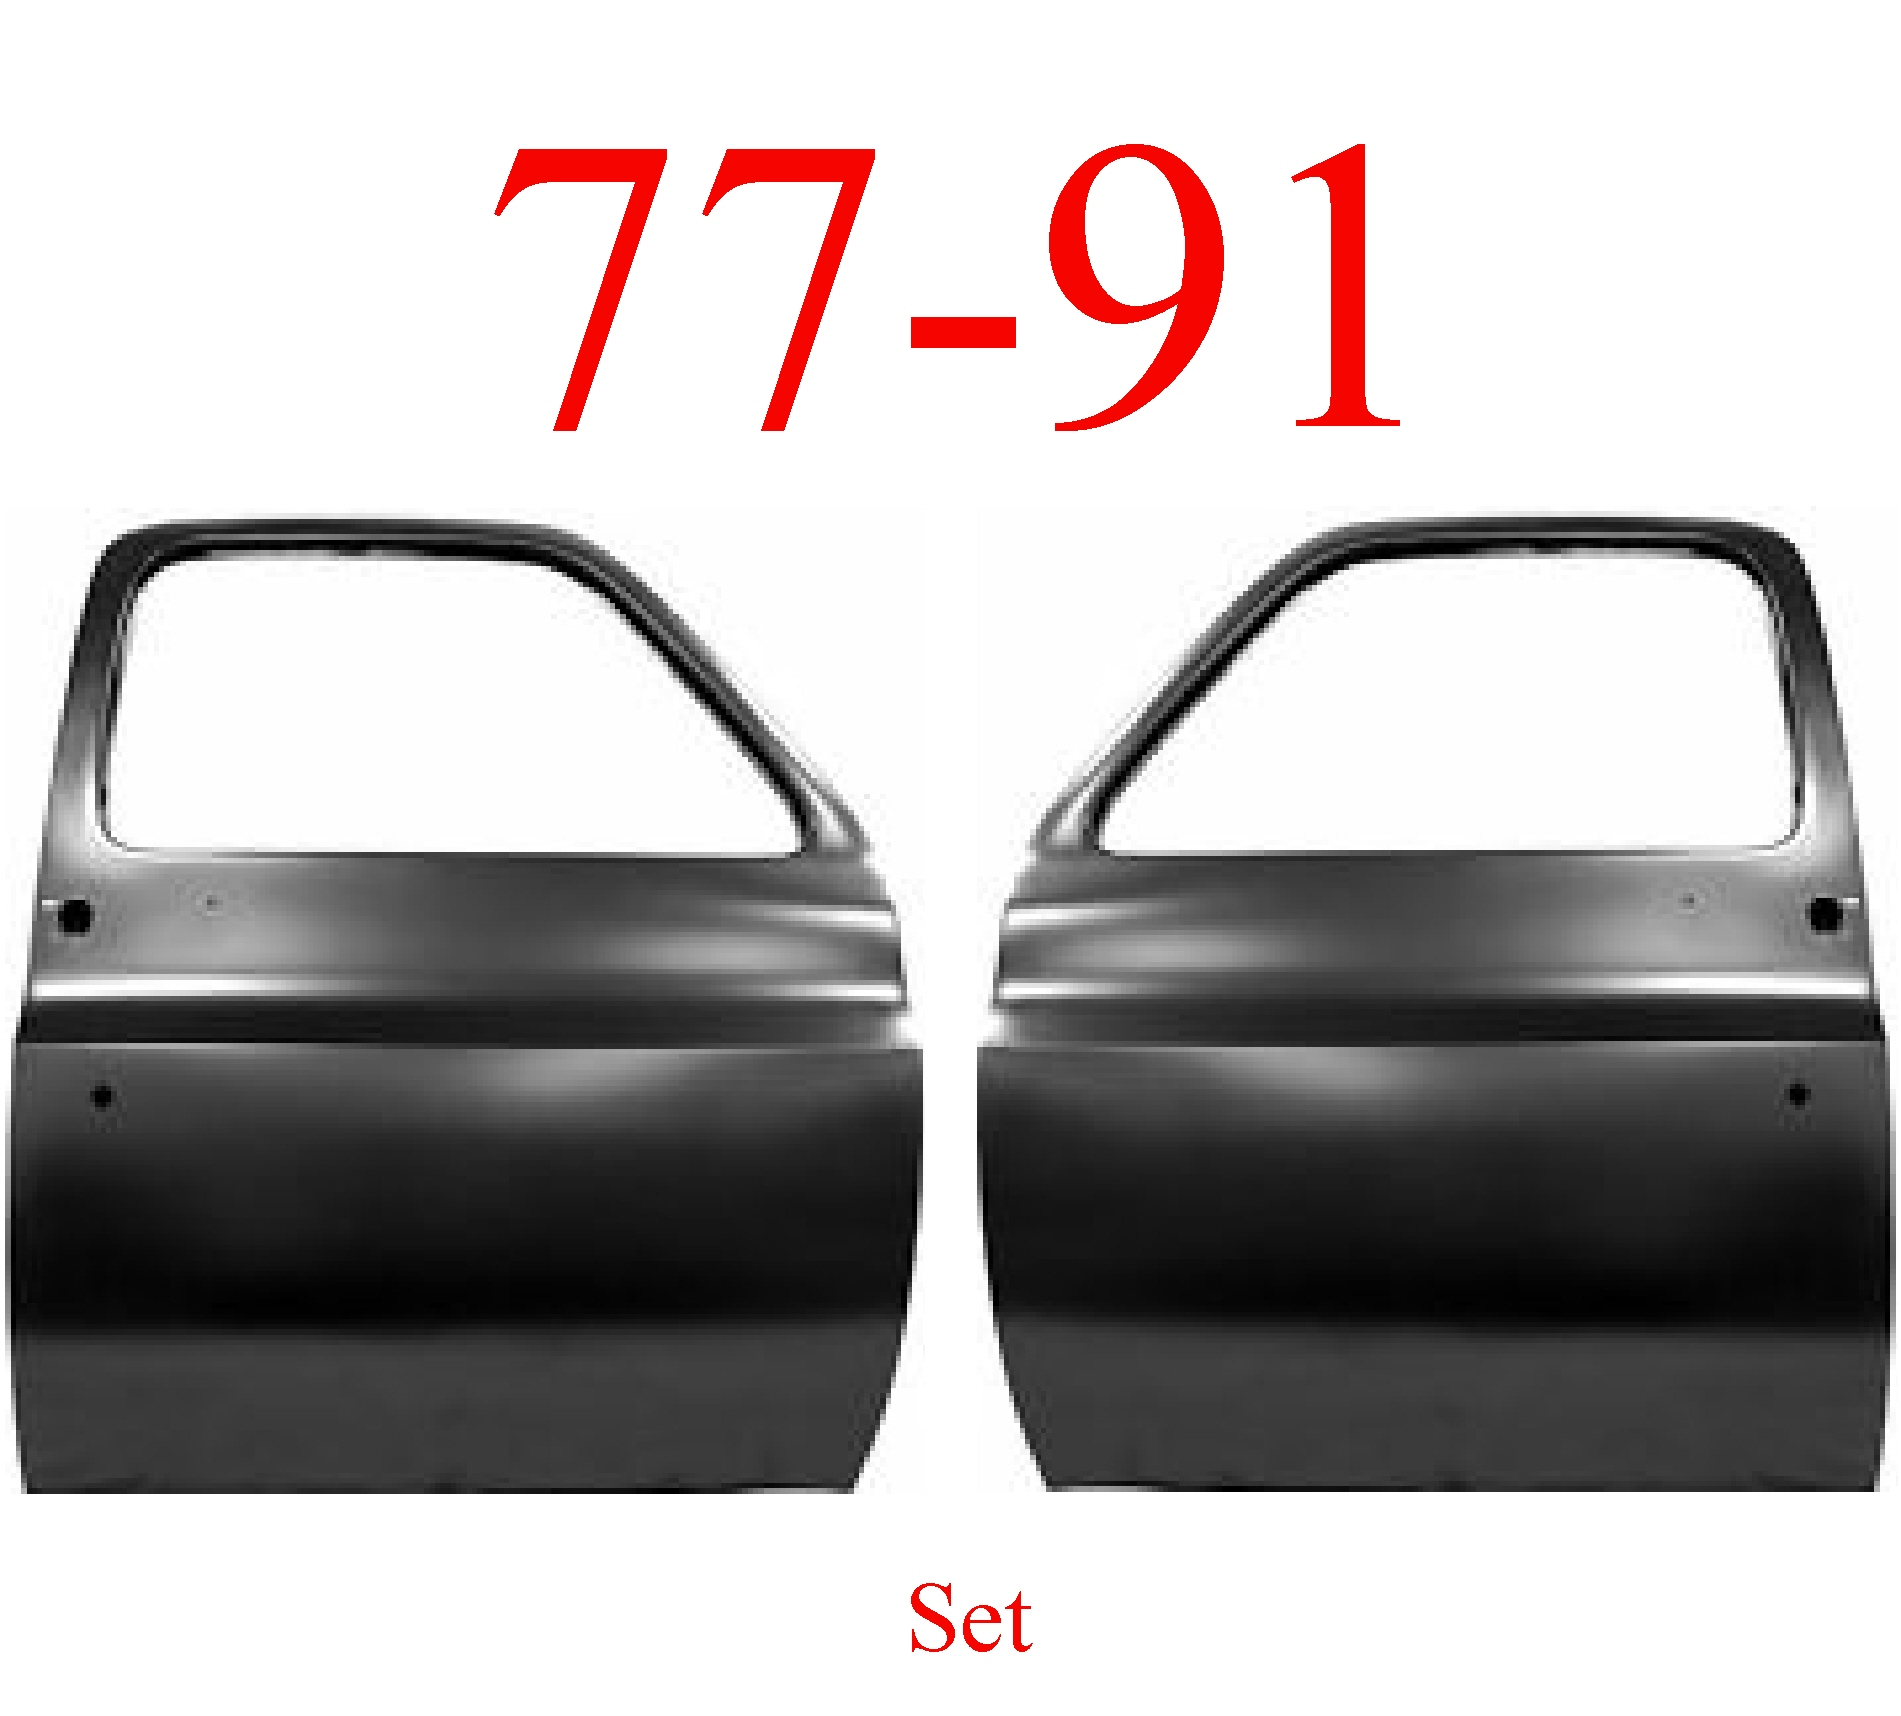 77-91 Chevy GMC Truck Door Set Shell